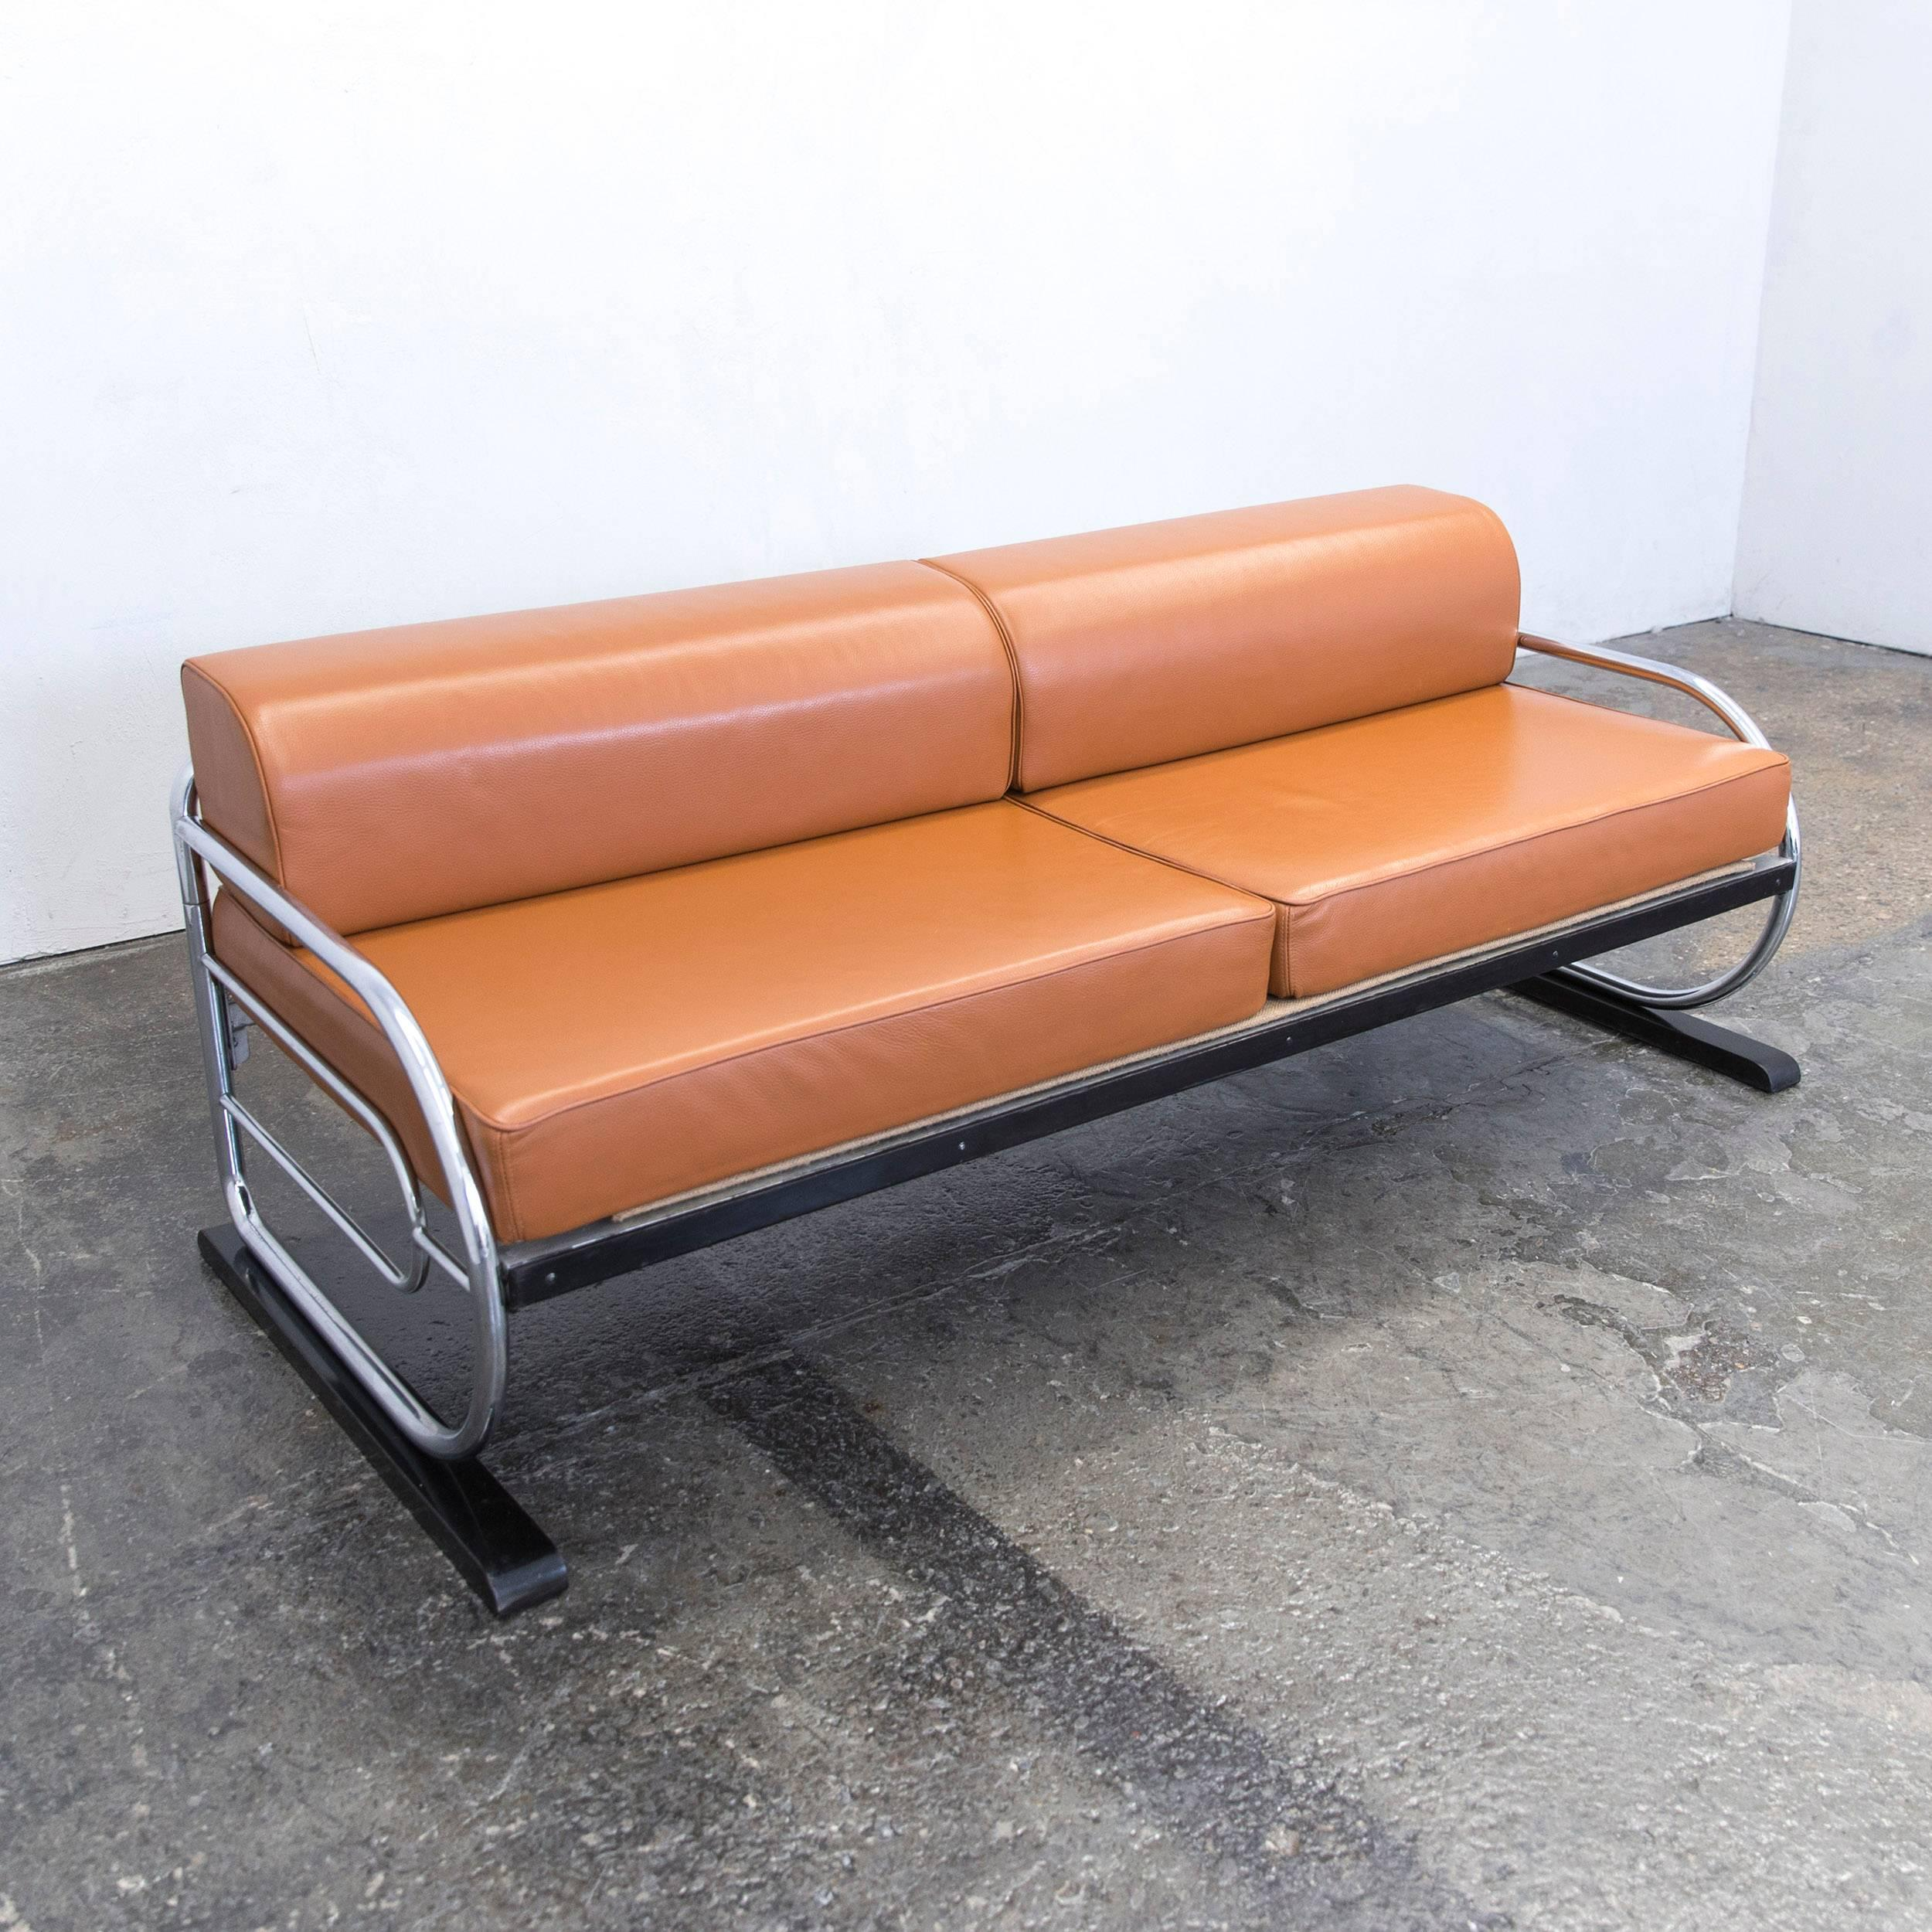 Sofa Leder Cognac gottwald bauhaus designer sofa leather cognac brown three seat metal